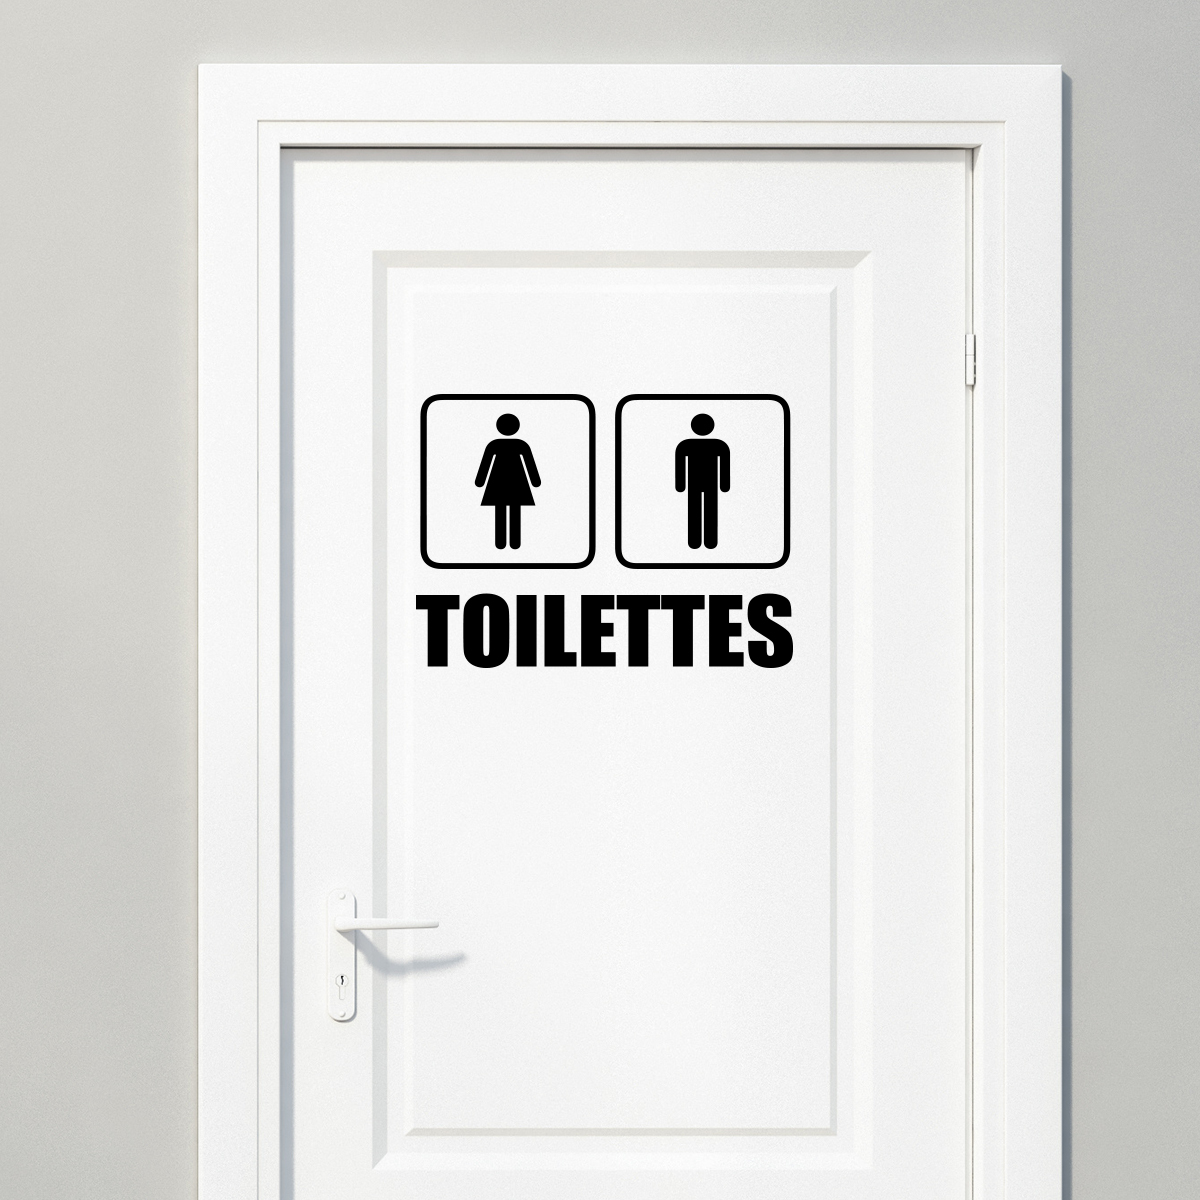 Sticker toilettes homme femme stickers toilettes porte for Stickers pour porte toilettes